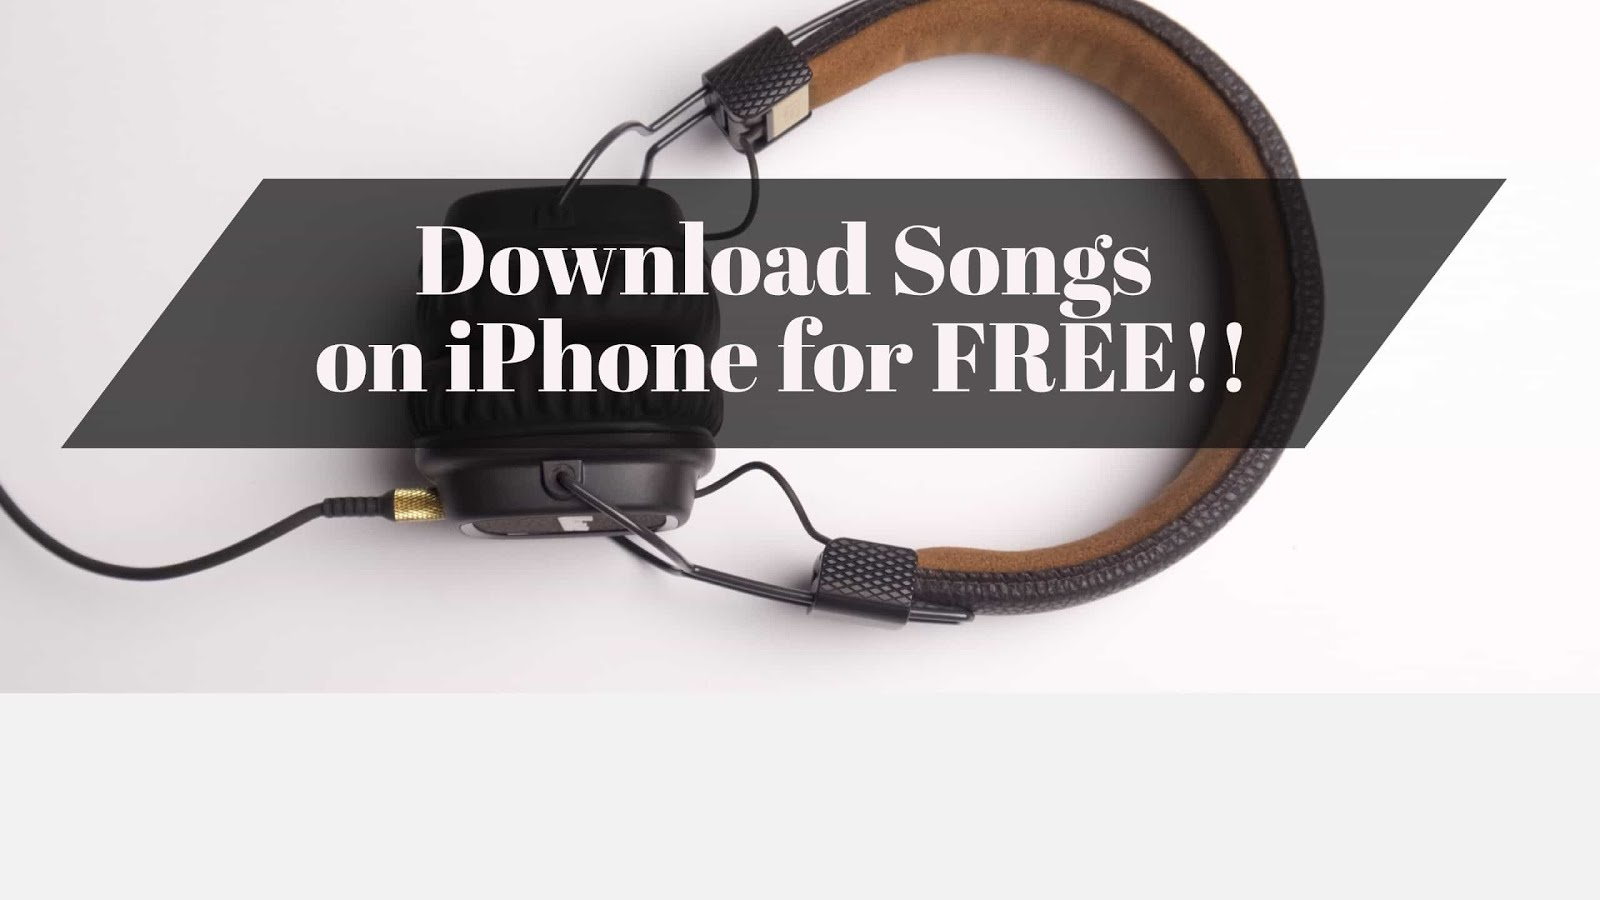 Want to download songs on iPhone for free without jailbreak? In this article, you will learn how to download songs for free without Jailbreak on iOS 10, 9.